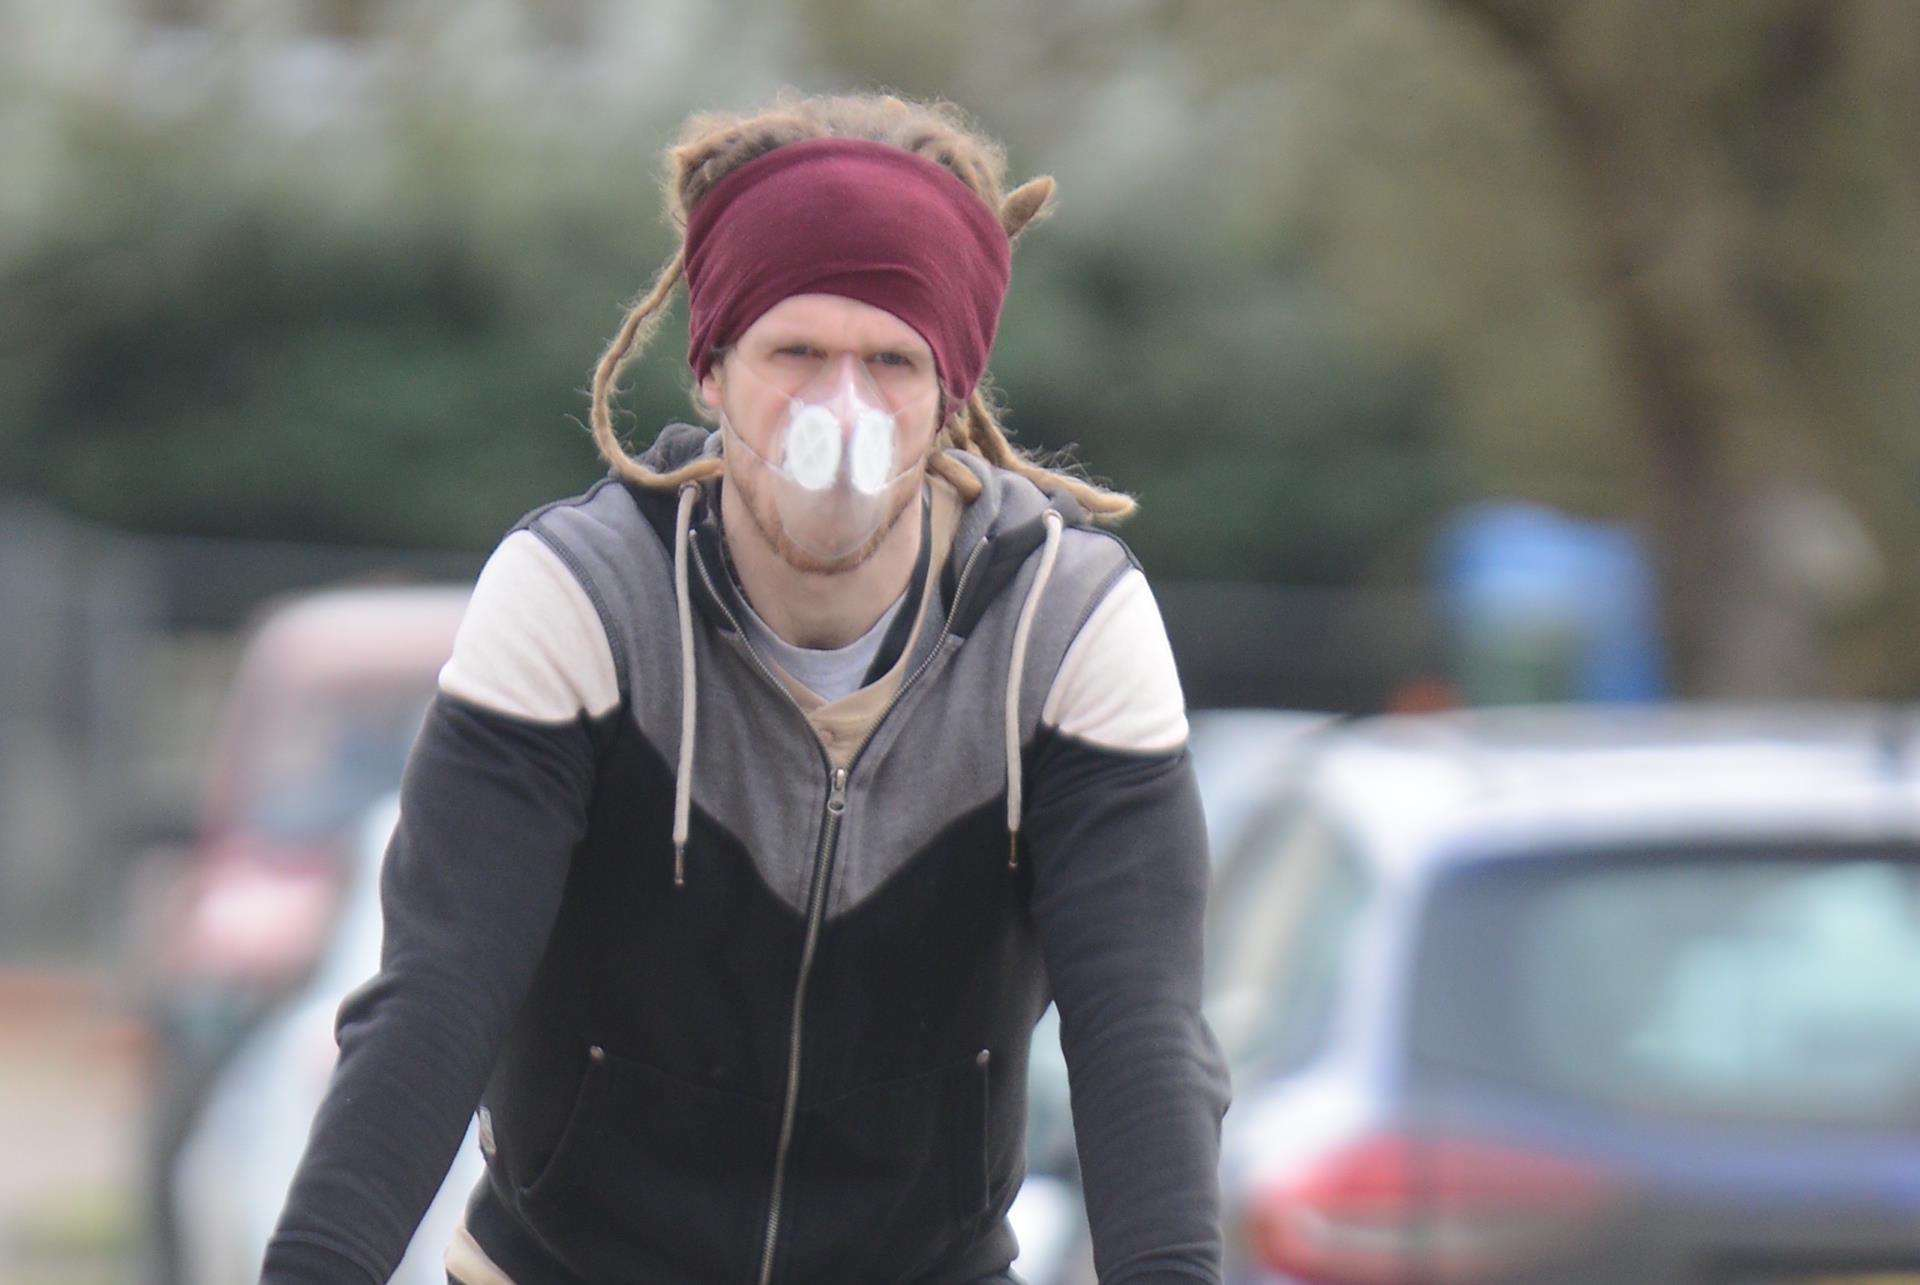 Pollution is high in parts of Canterbury and Herne